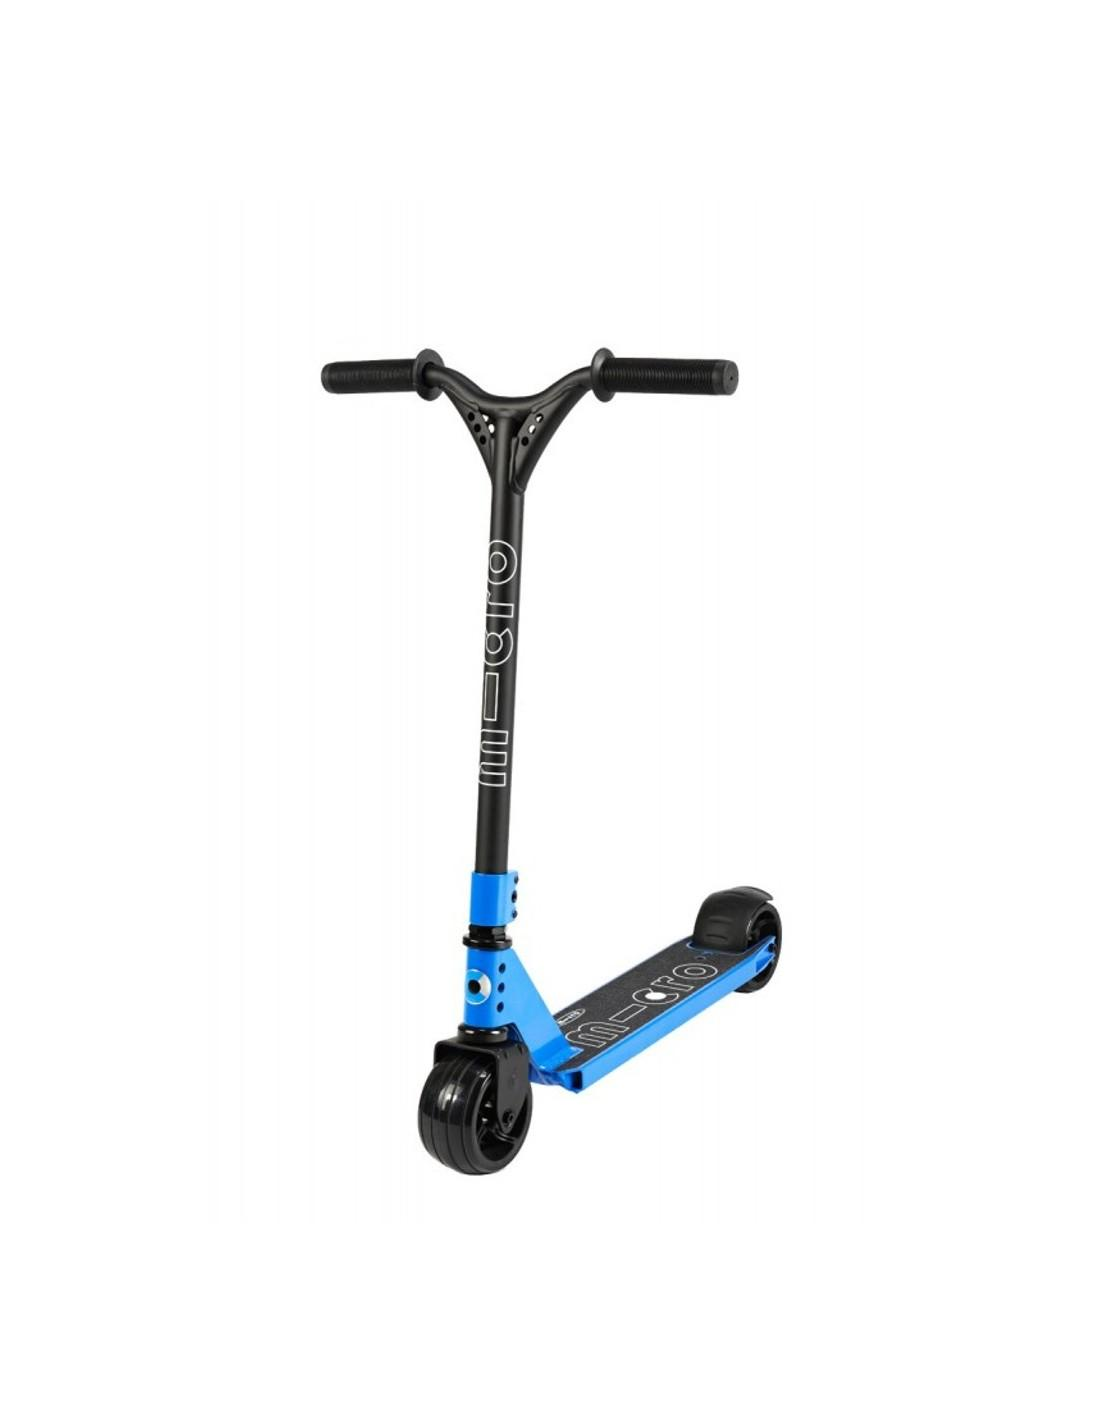 Micro Scooter MX Freeride Street Stuntscooter, blue Scooterreifen - PU Reifen, Scooterart - Stuntscooter, Scooterfarbe - Blau,